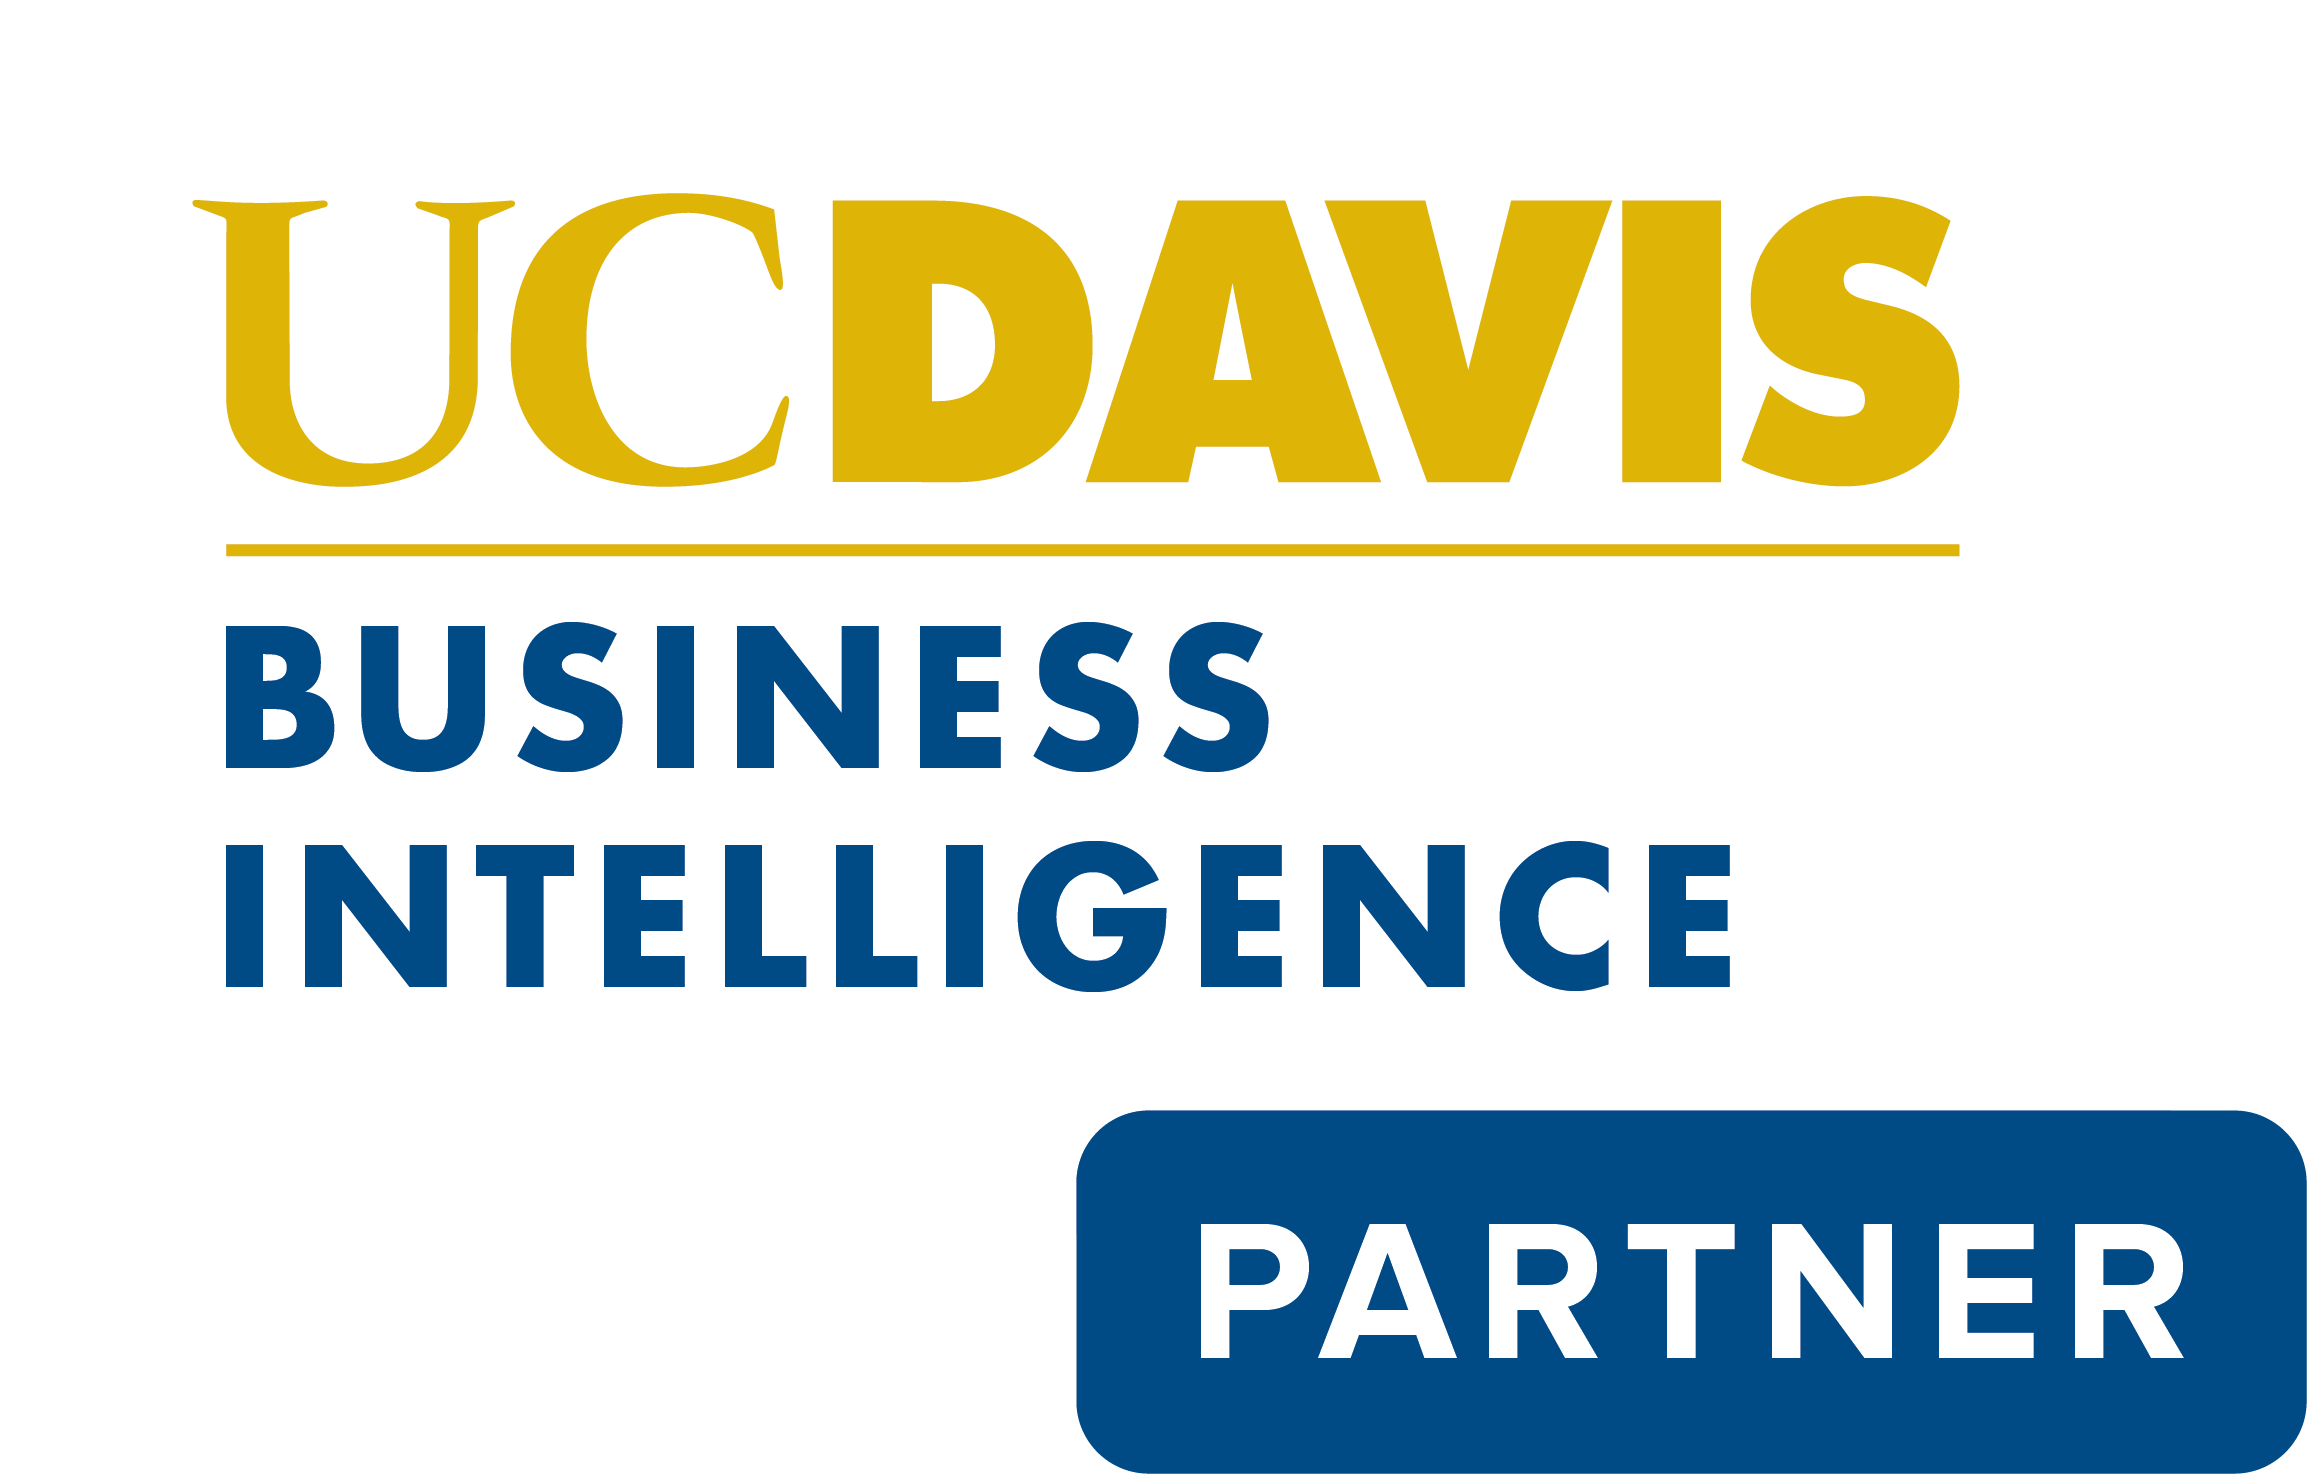 business intelligence partner logo